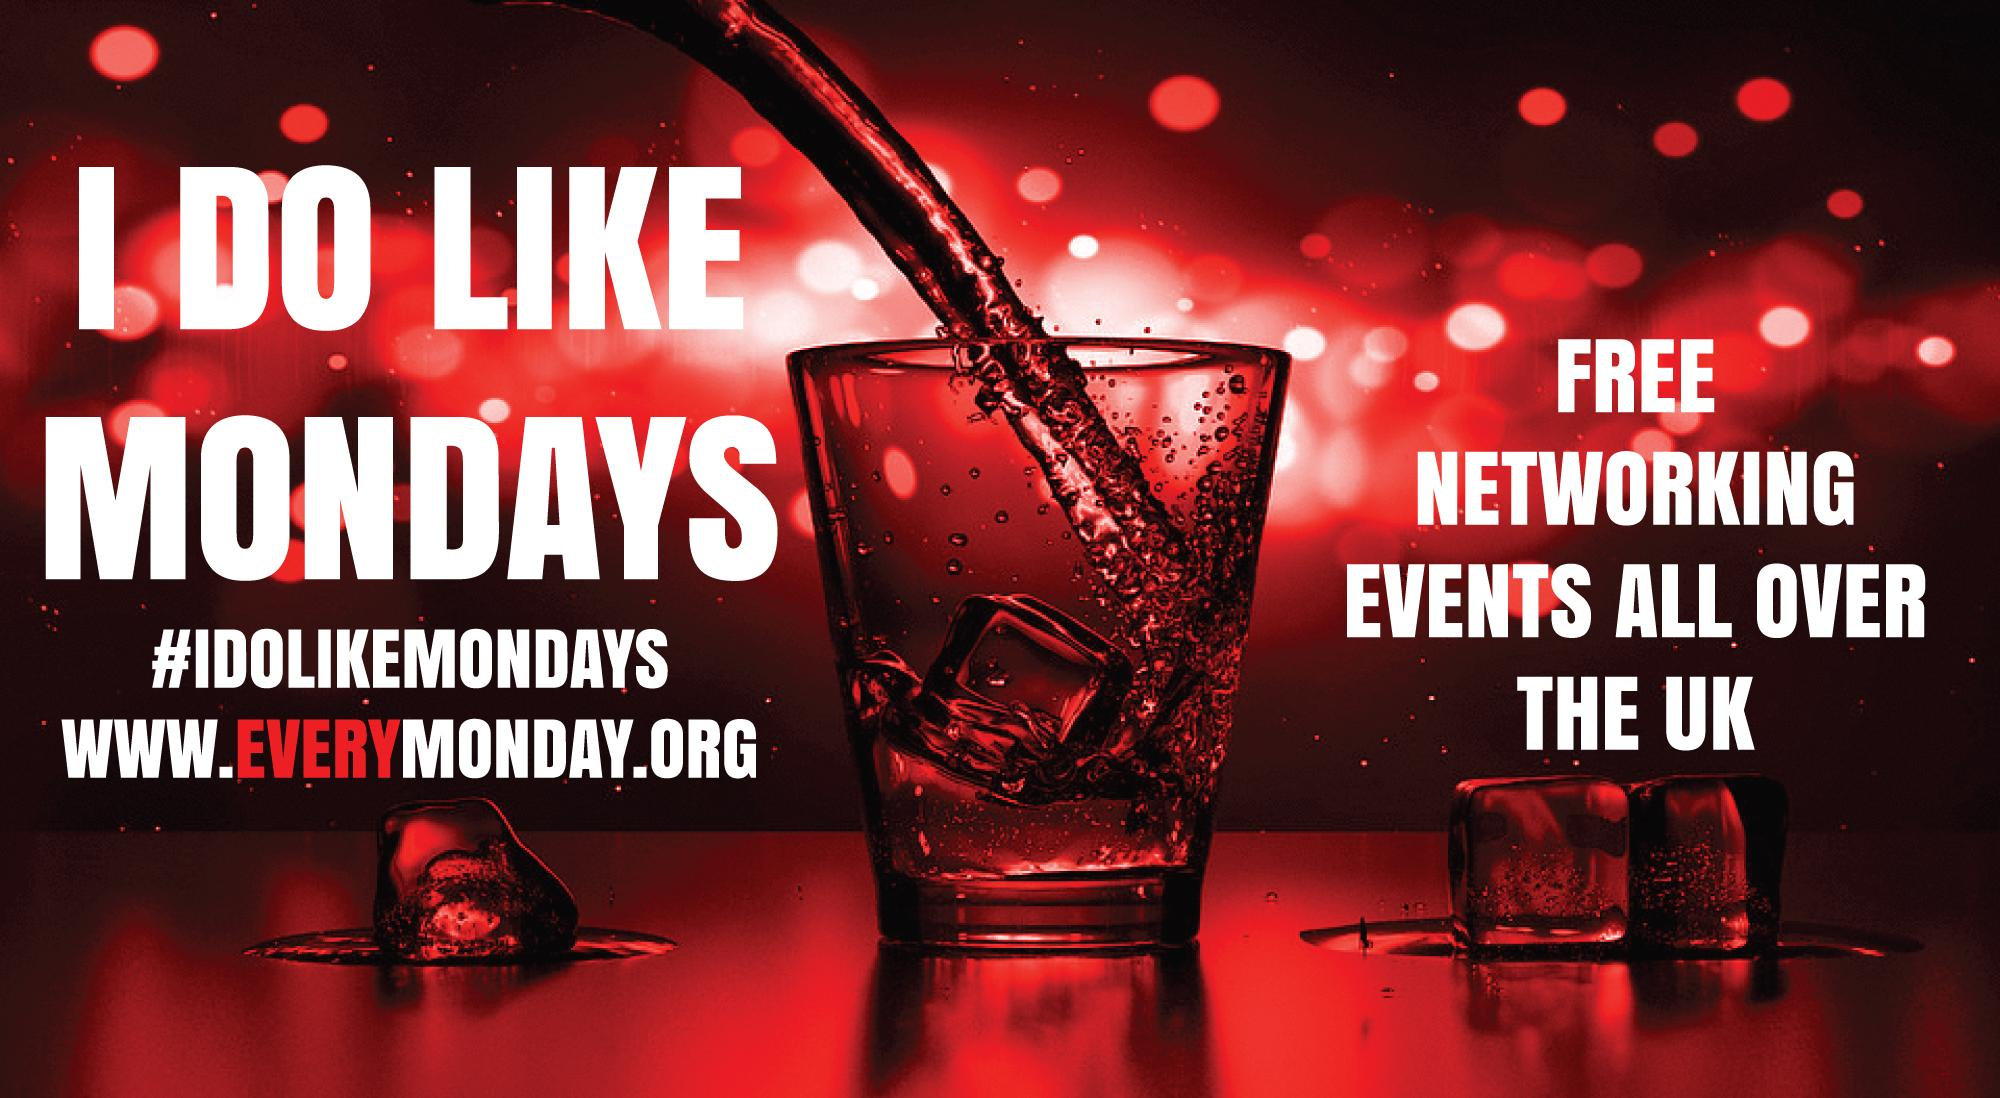 I DO LIKE MONDAYS! Free networking event in Beeston